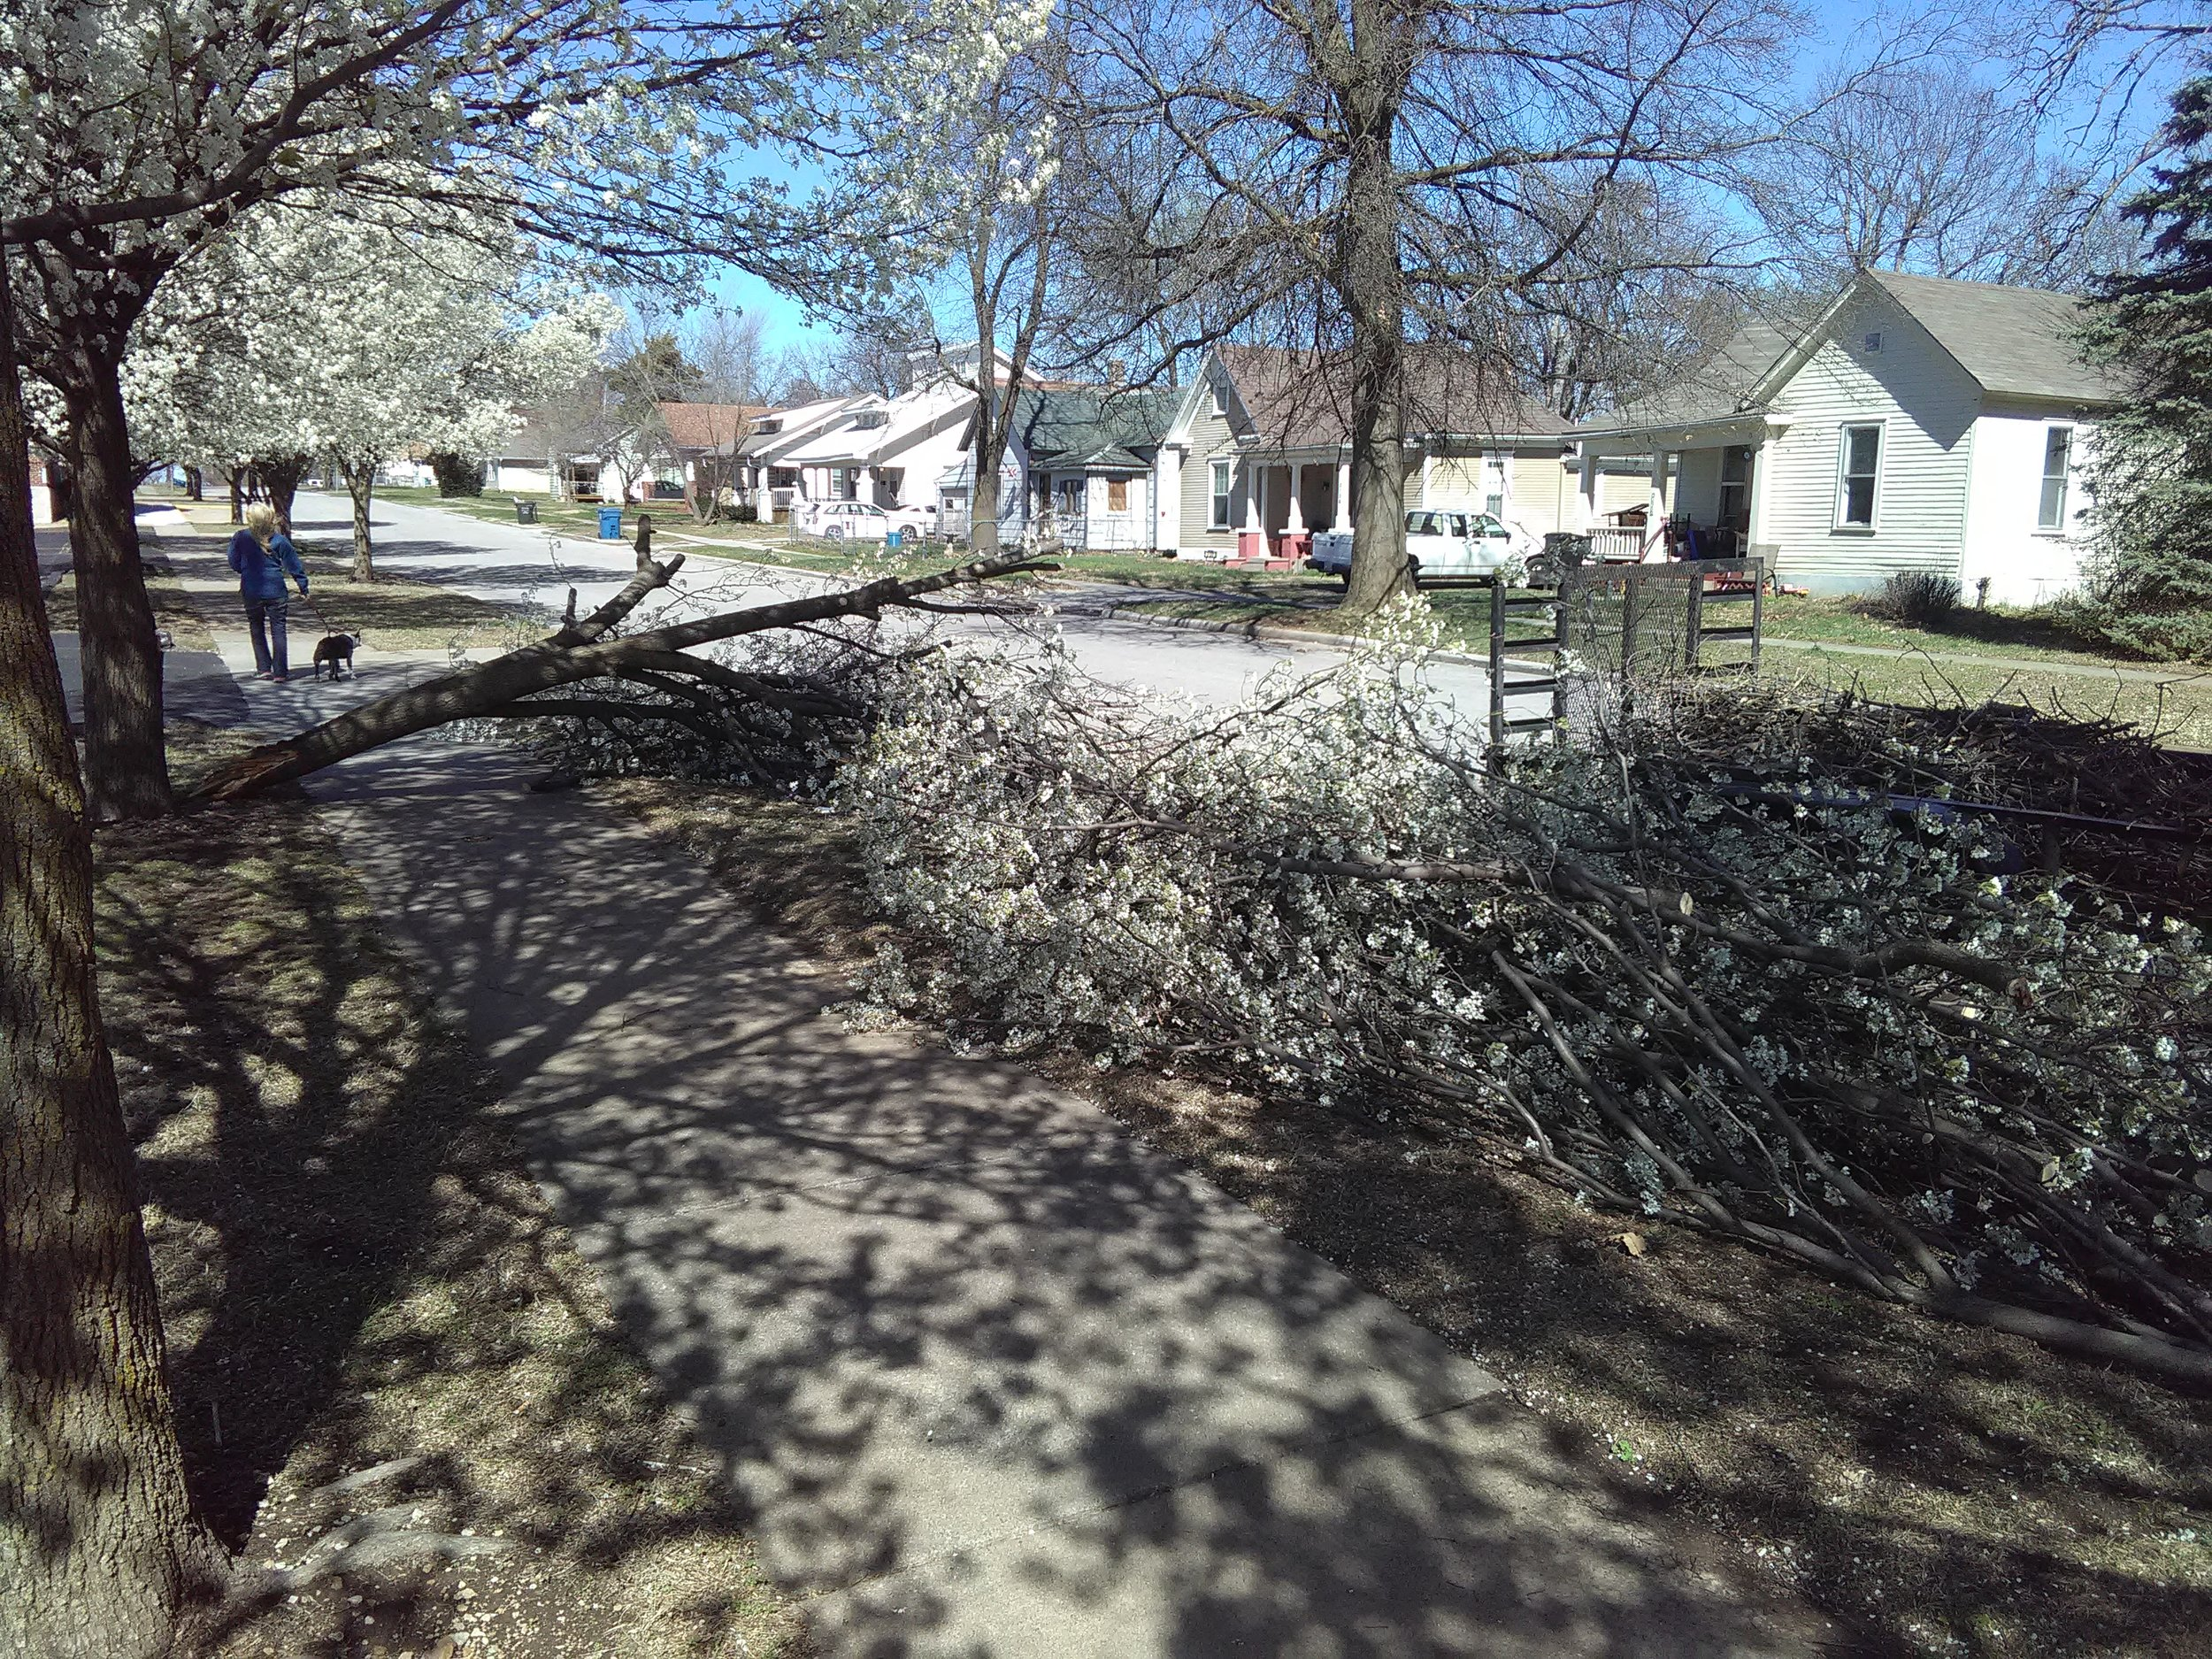 Major split off of a bradford pear tree during the spring at high flowering time.